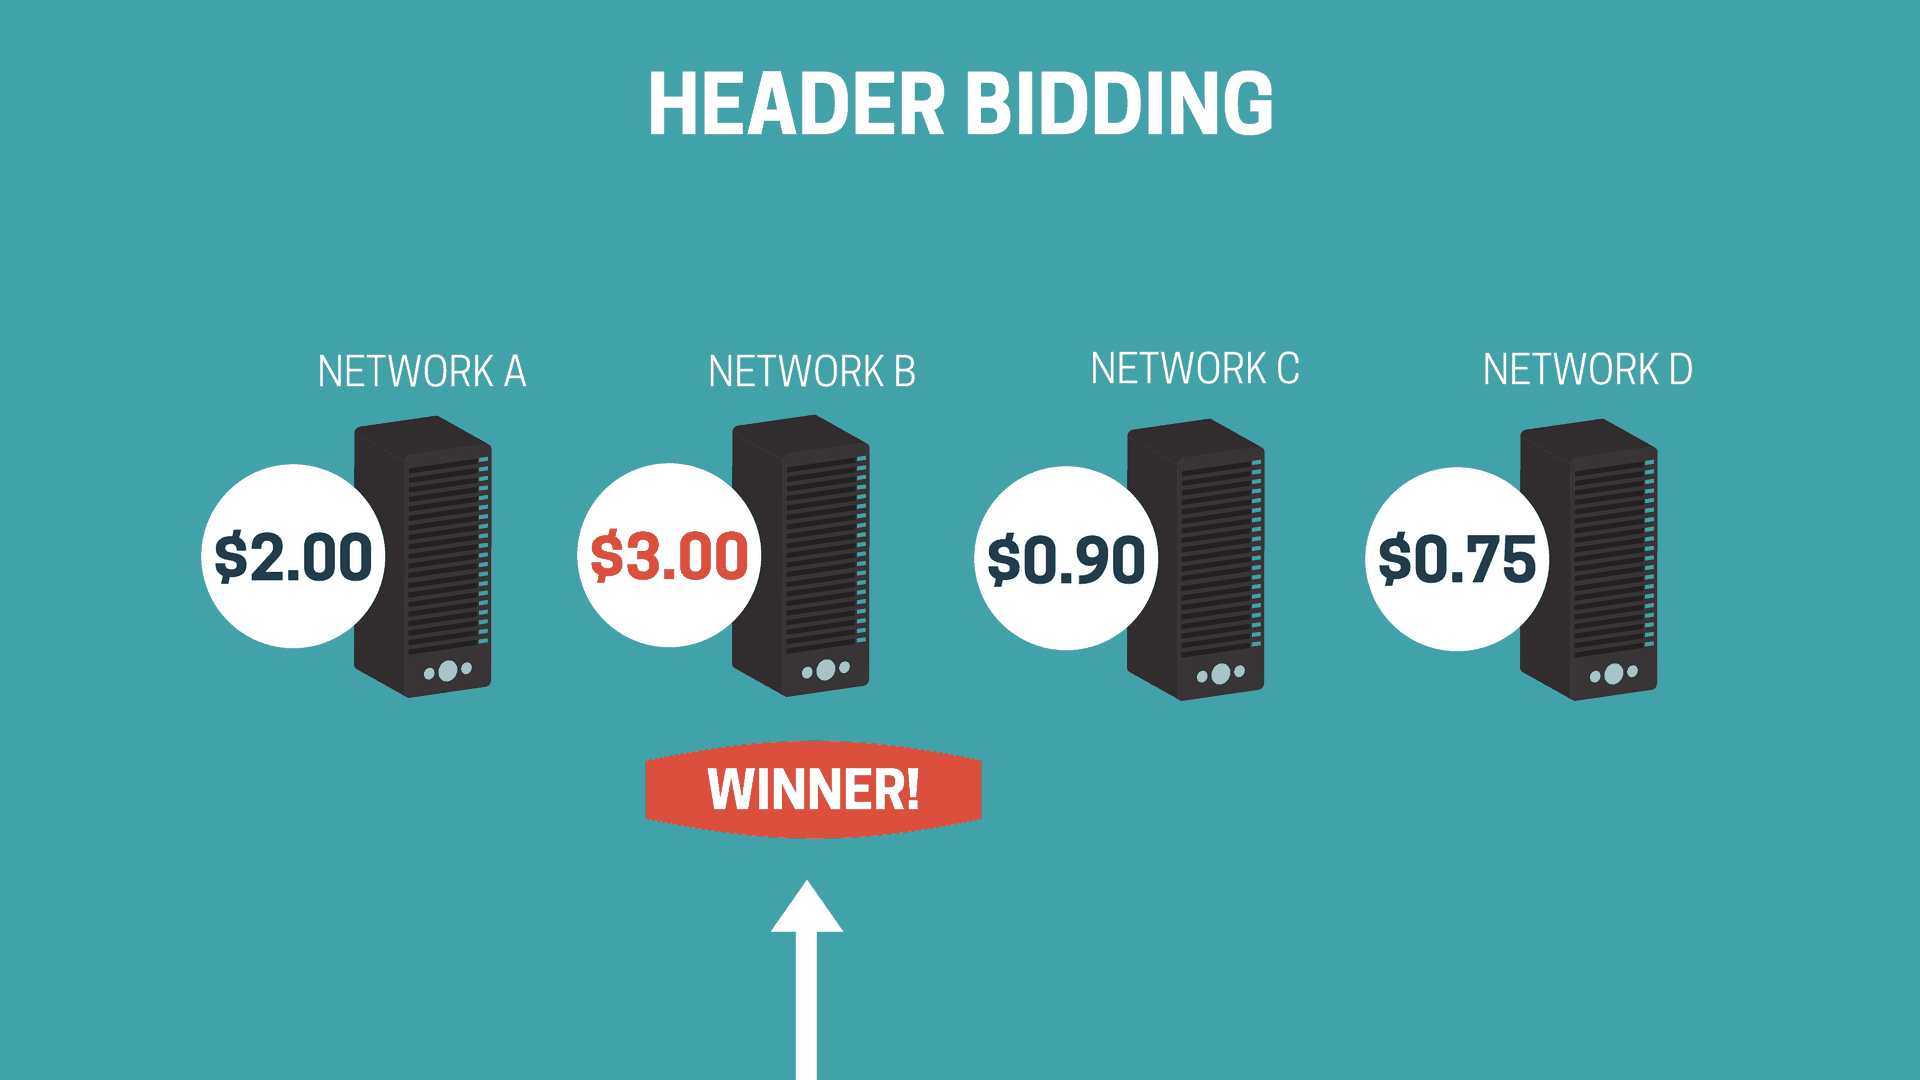 Header bidding infographic